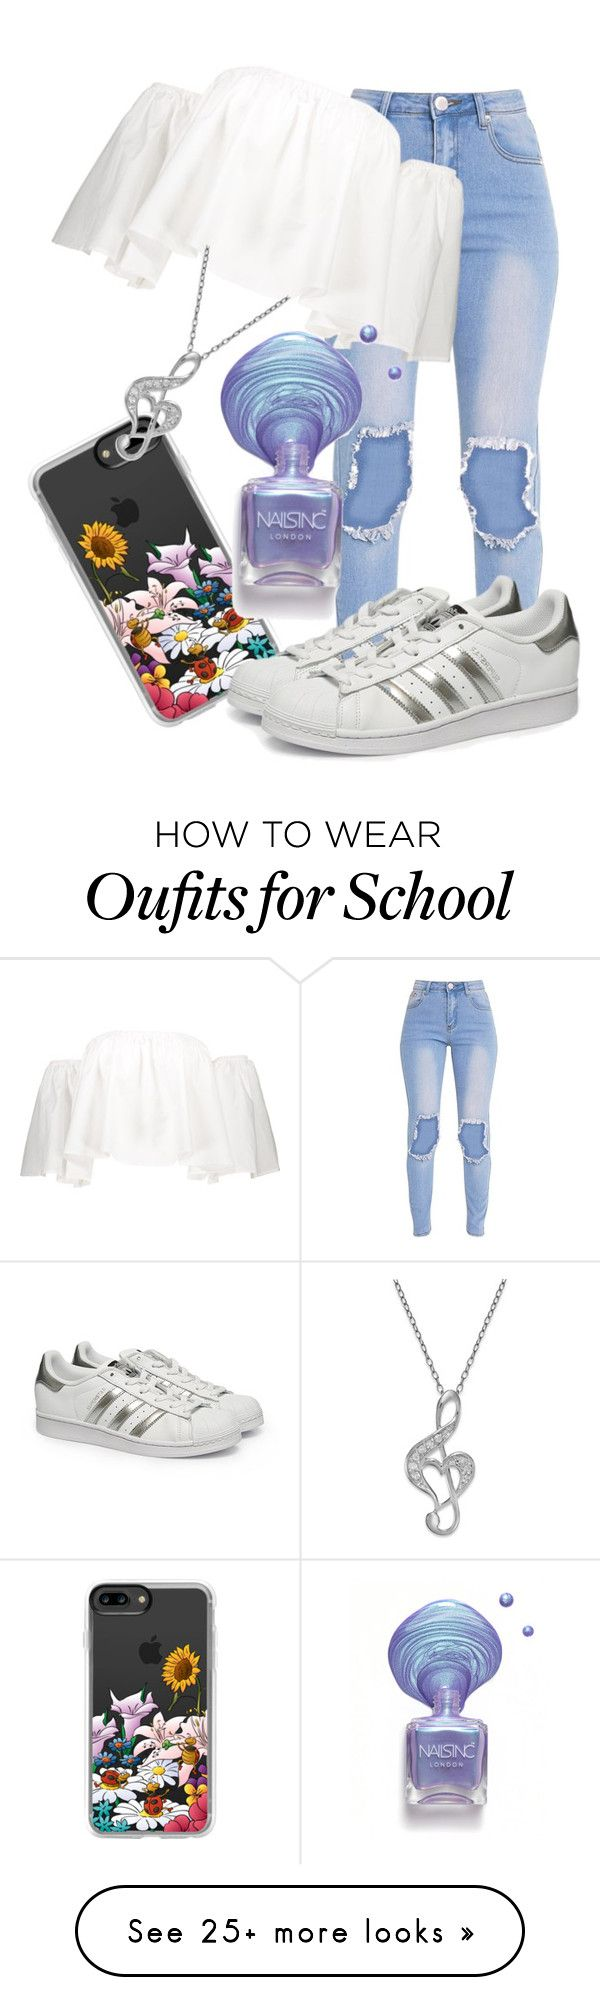 """IDK"" by indianna28-2002 on Polyvore featuring Casetify and adidas"